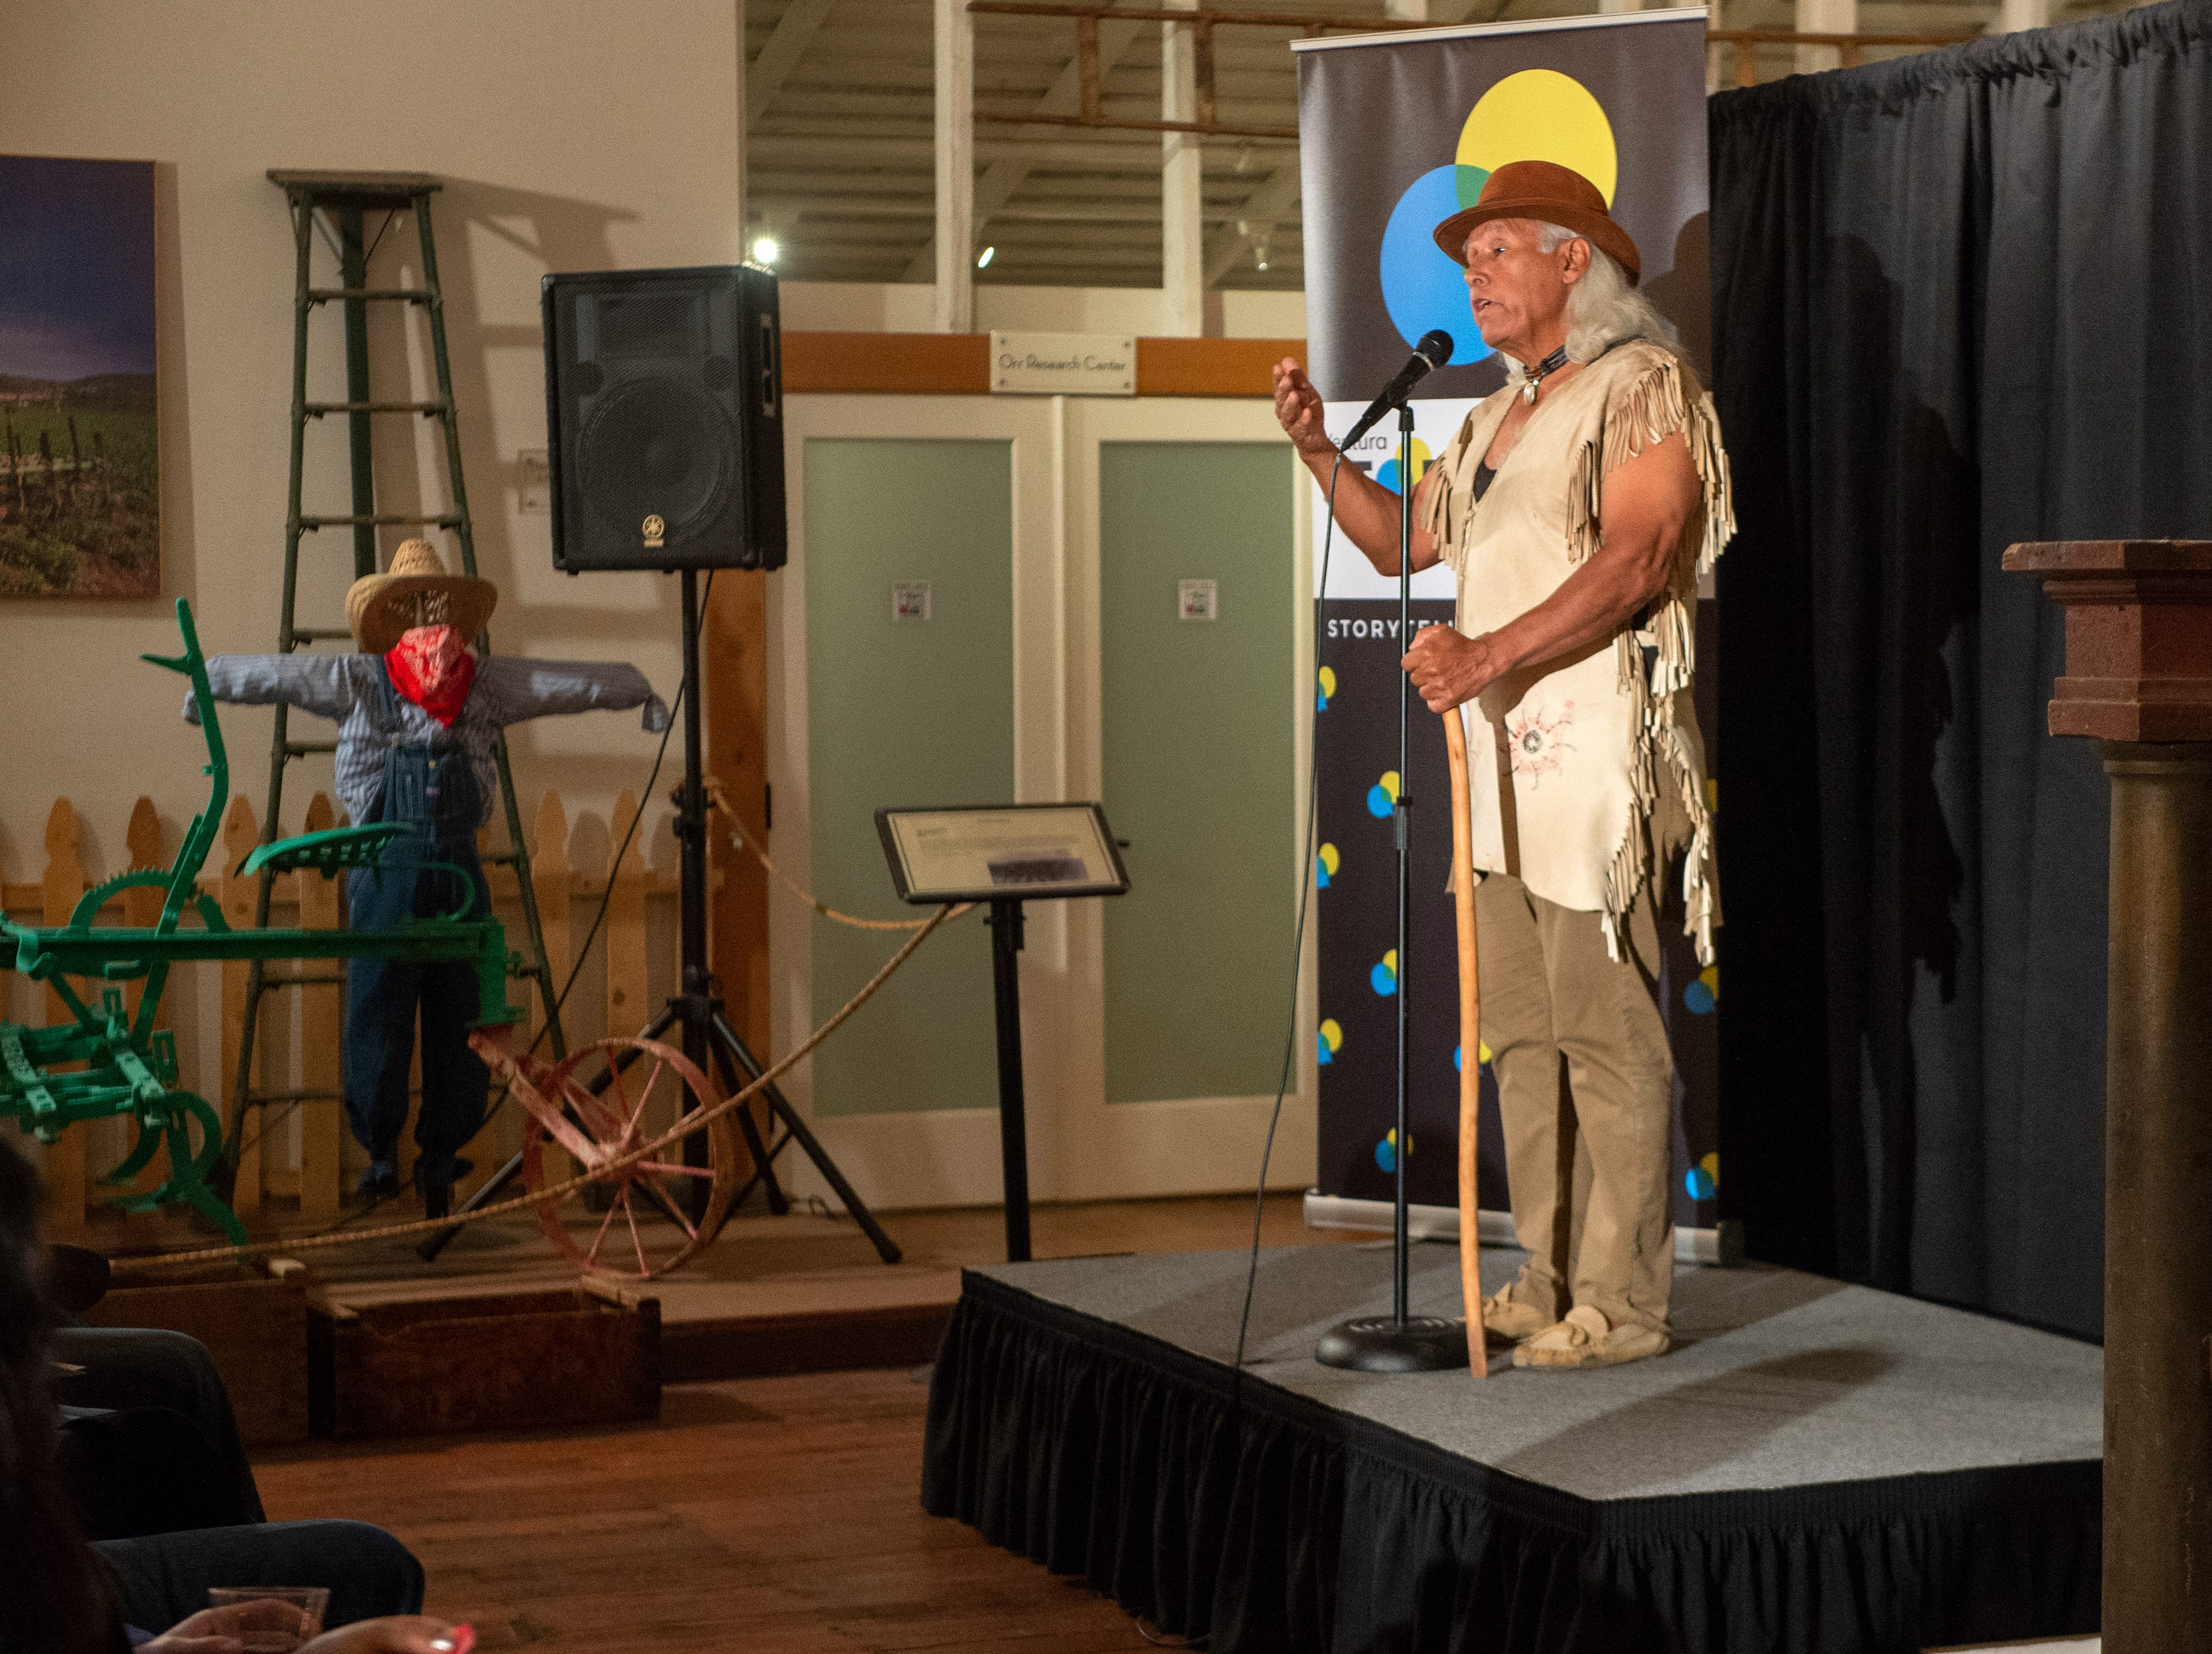 """Alan Salazar shares his tale of reconnecting with the past and creating a new legacy during the Ventura Storytellers Project event at the Museum of Ventura County Agriculture Museum on Thursday. The theme of the night was """"Away We Go."""""""